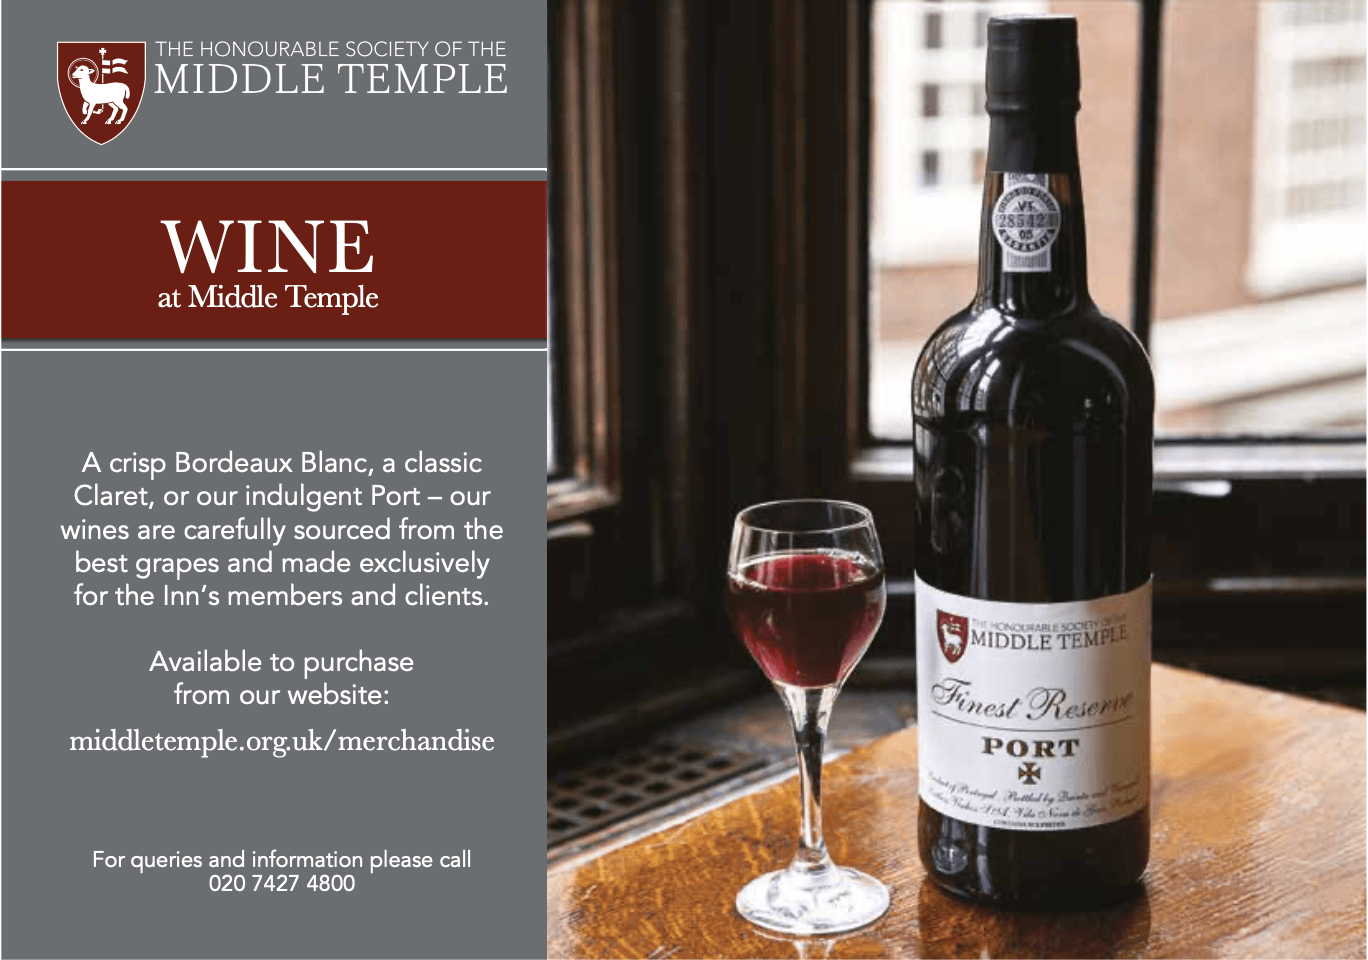 Middle Temple Wine